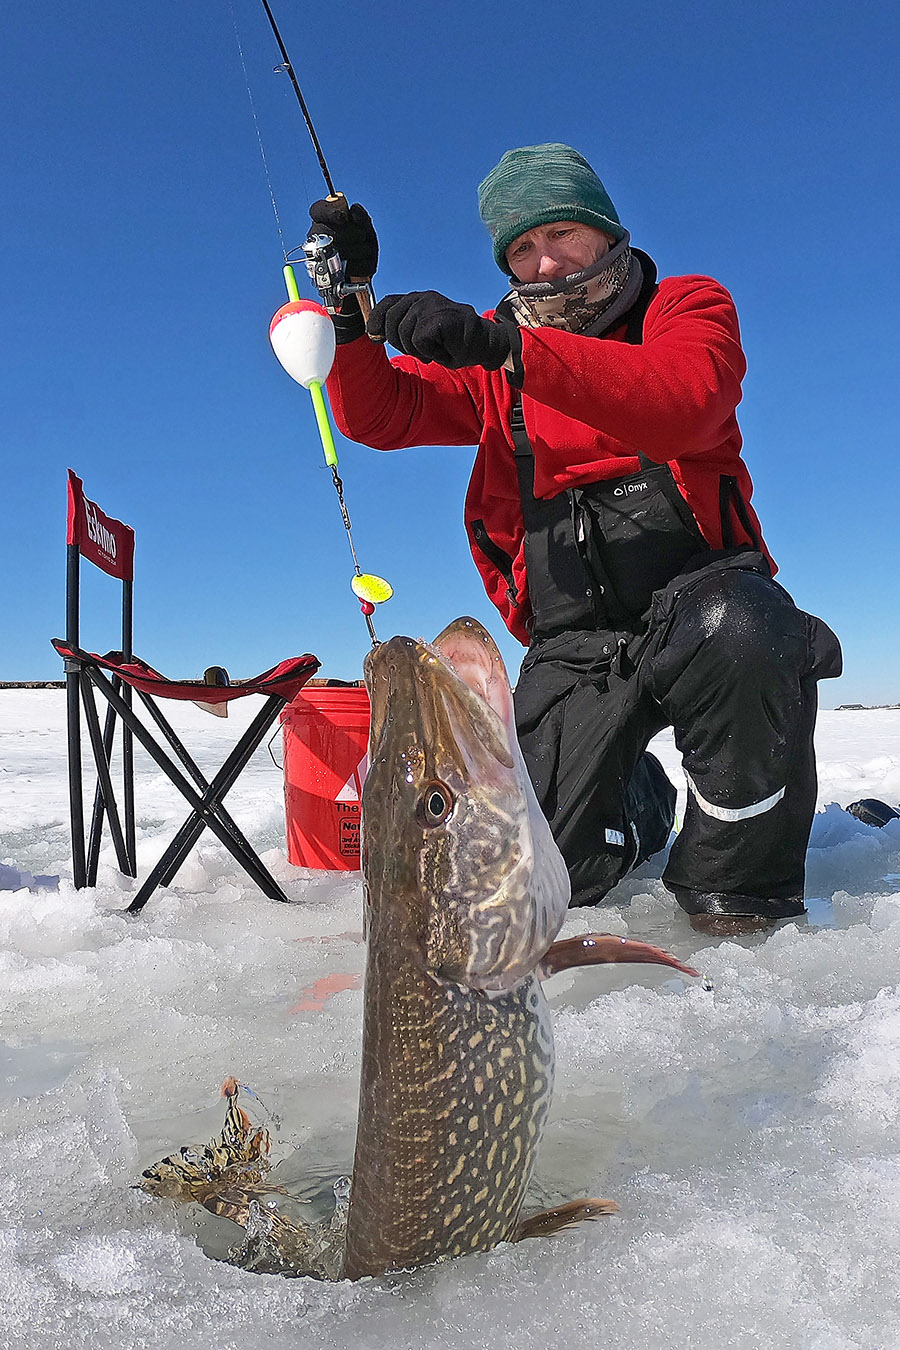 Angler pulling pike from ice hole